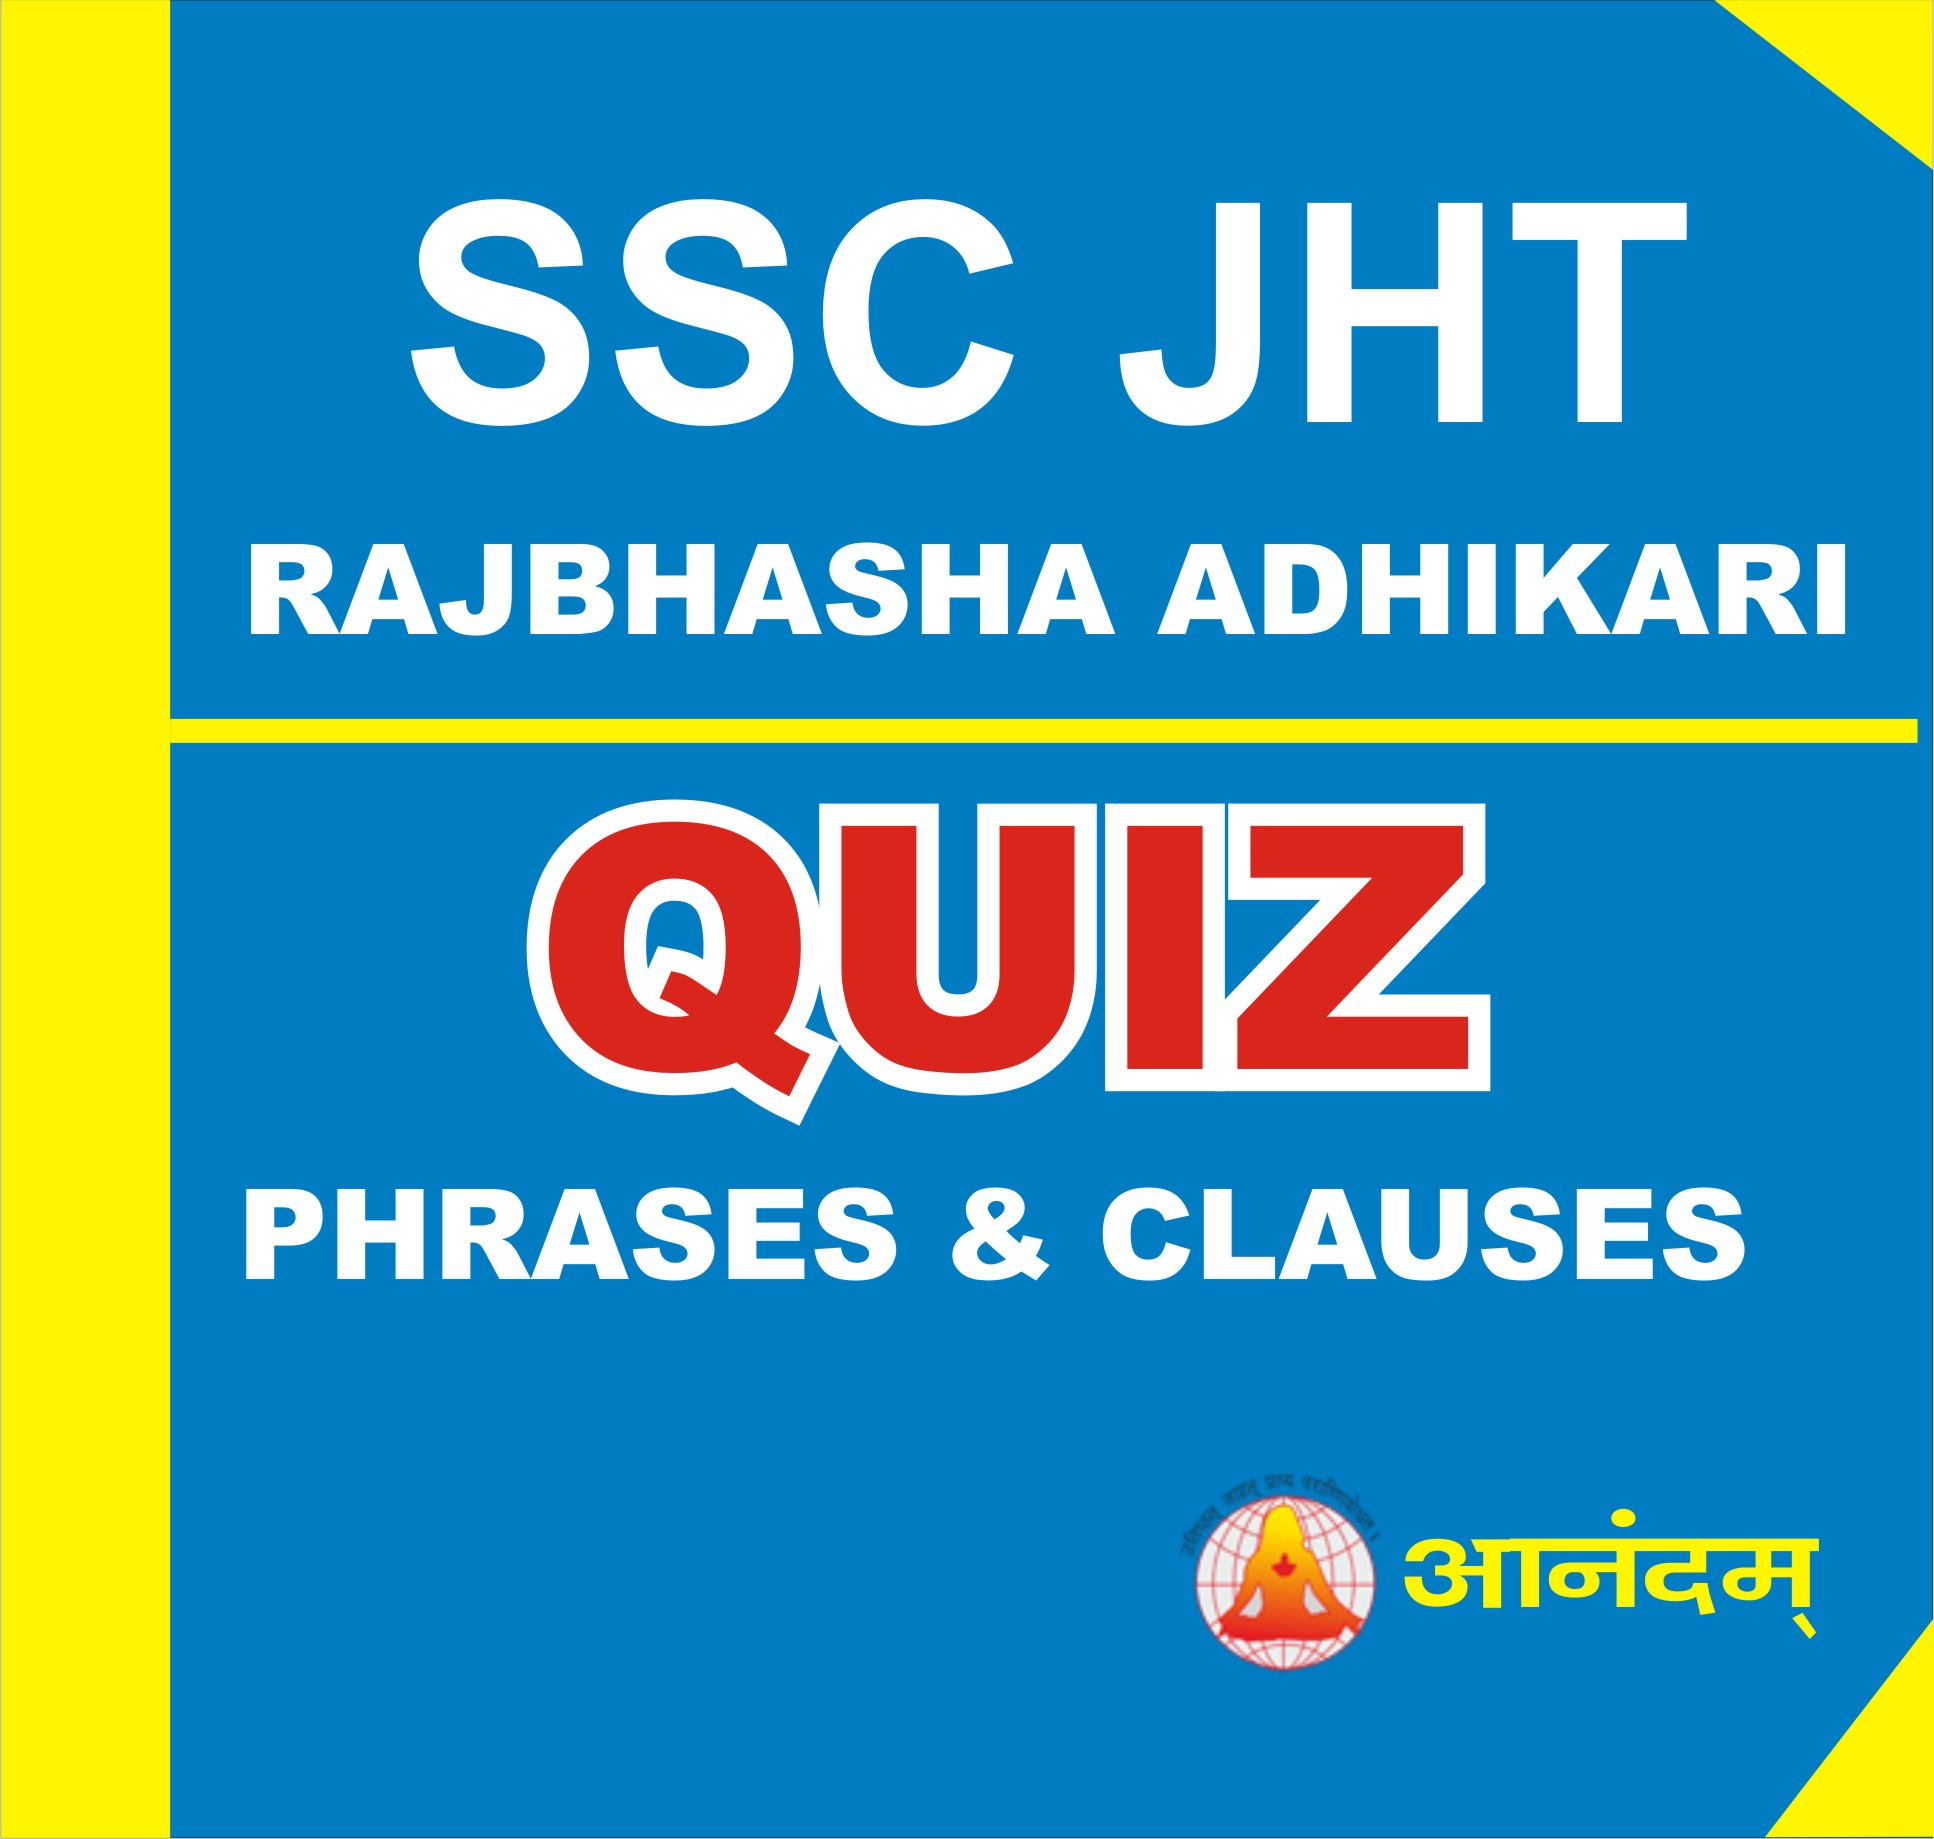 how to prepare for ssc jht exam